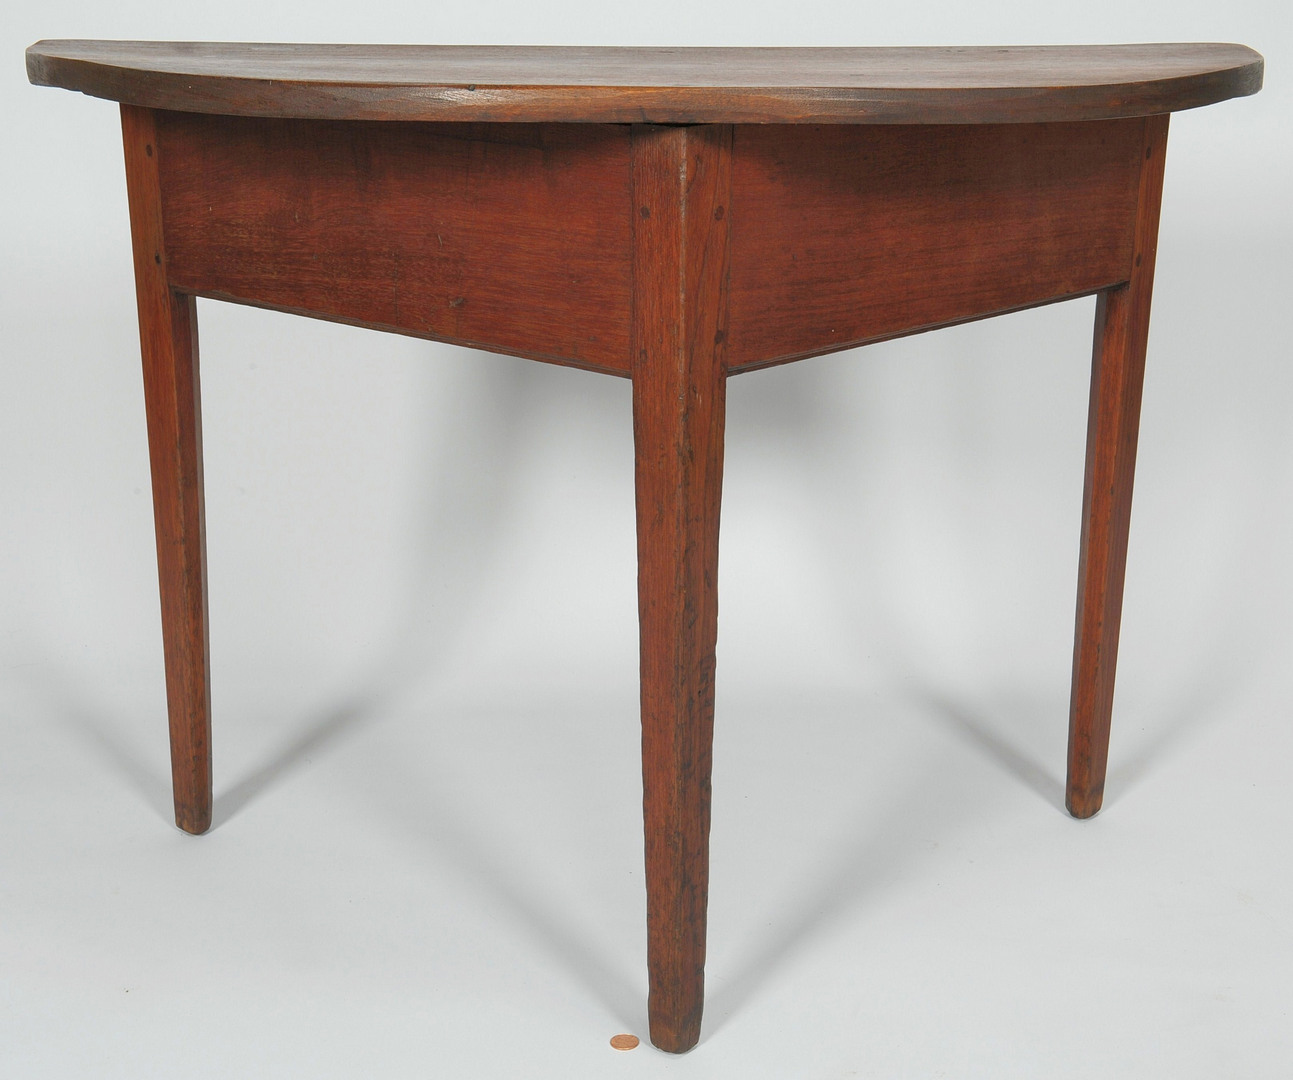 Lot 111: Tennessee half round walnut table